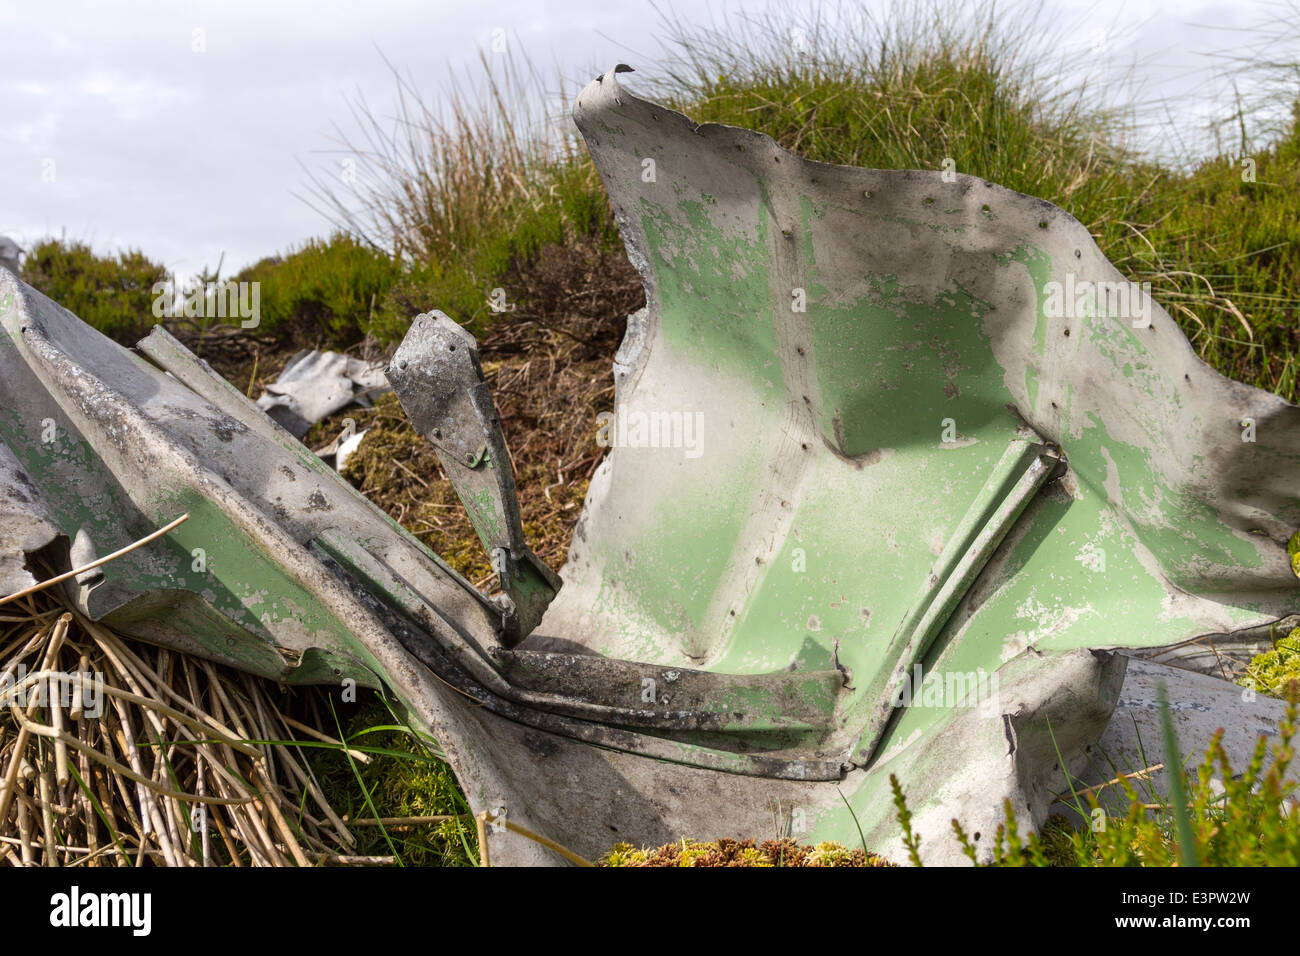 Remains of a Blenheim Mk1, L1252 Aircraft Which Crashed in Bad Weather on 26th October 1938 Lunedale, County Durham. - Stock Image